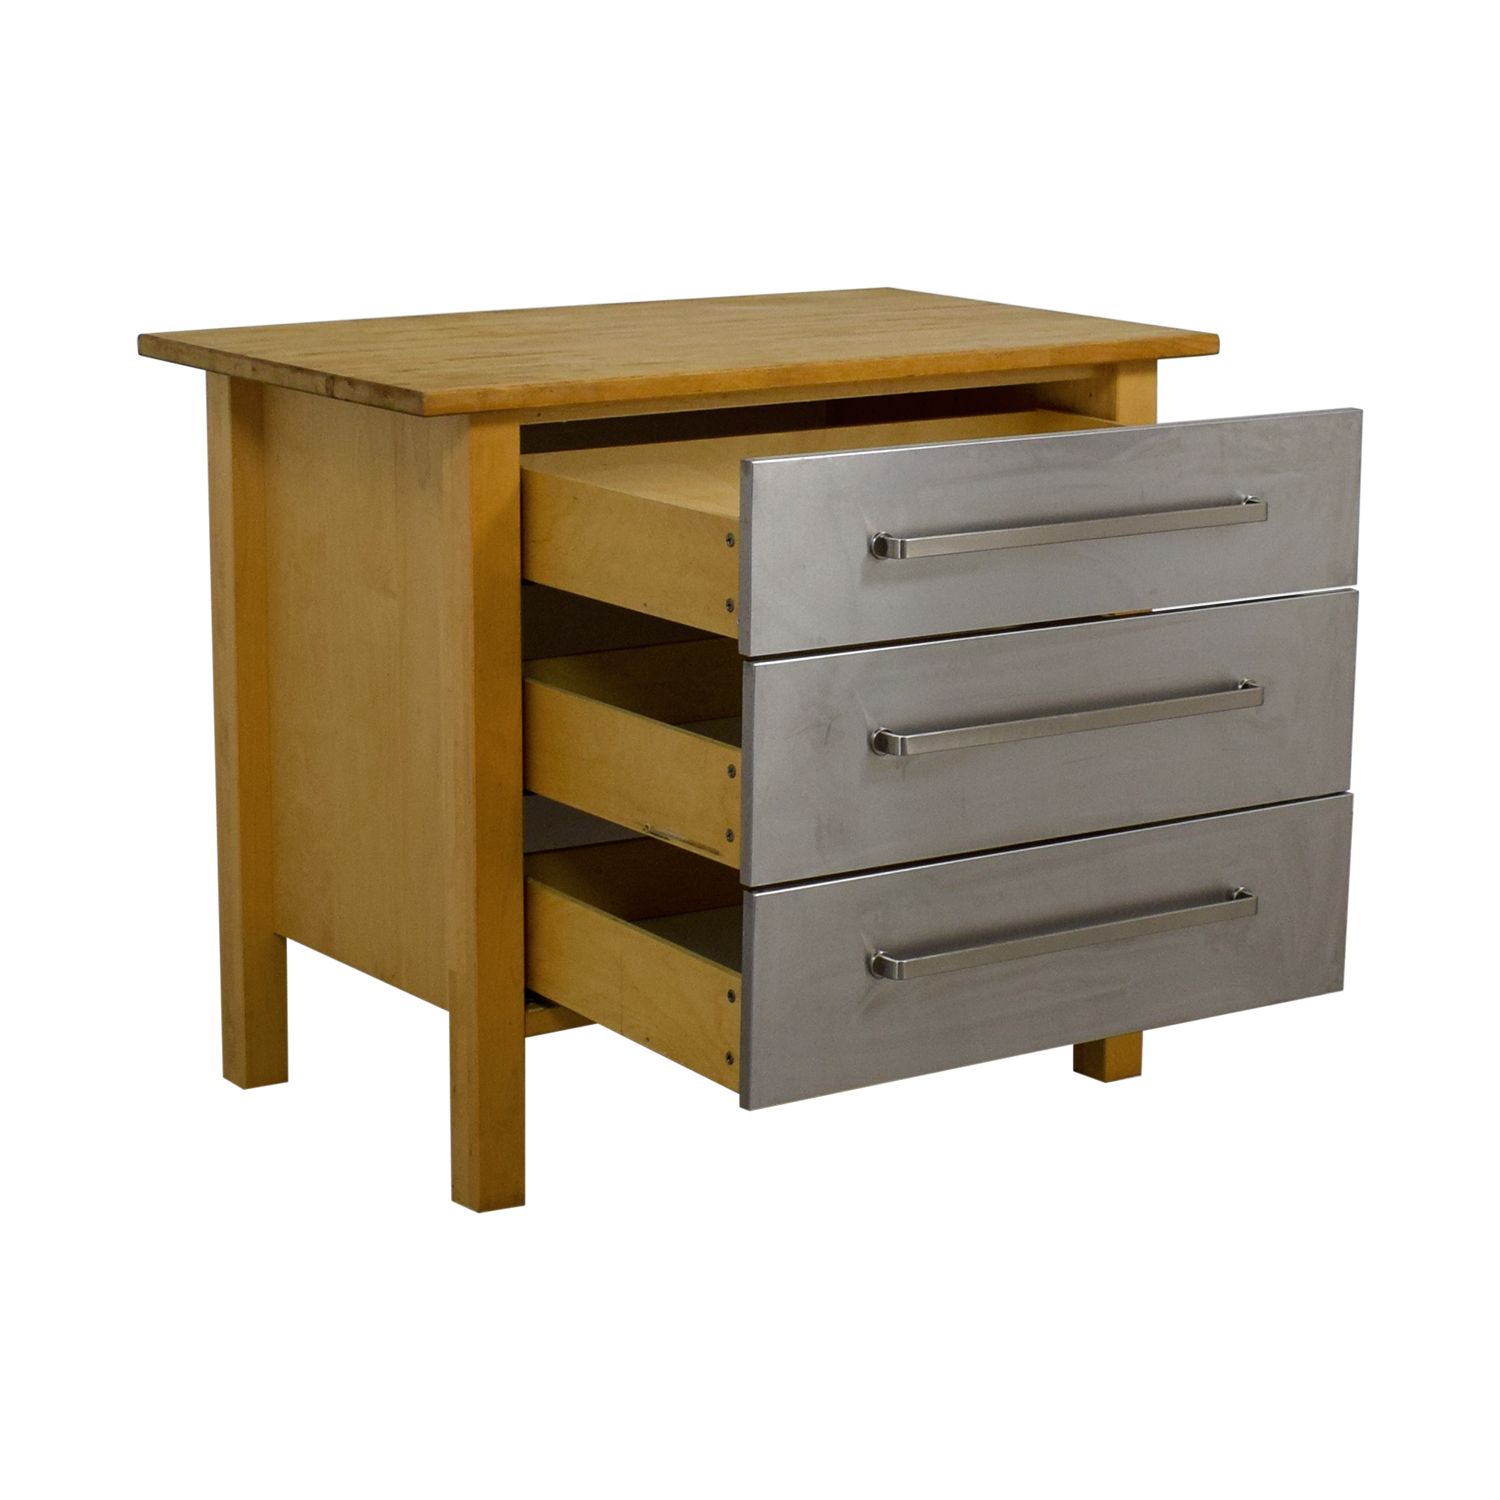 77% OFF - IKEA IKEA Varde Kitchen Butcher Block Island with Metal Drawers /  Tables